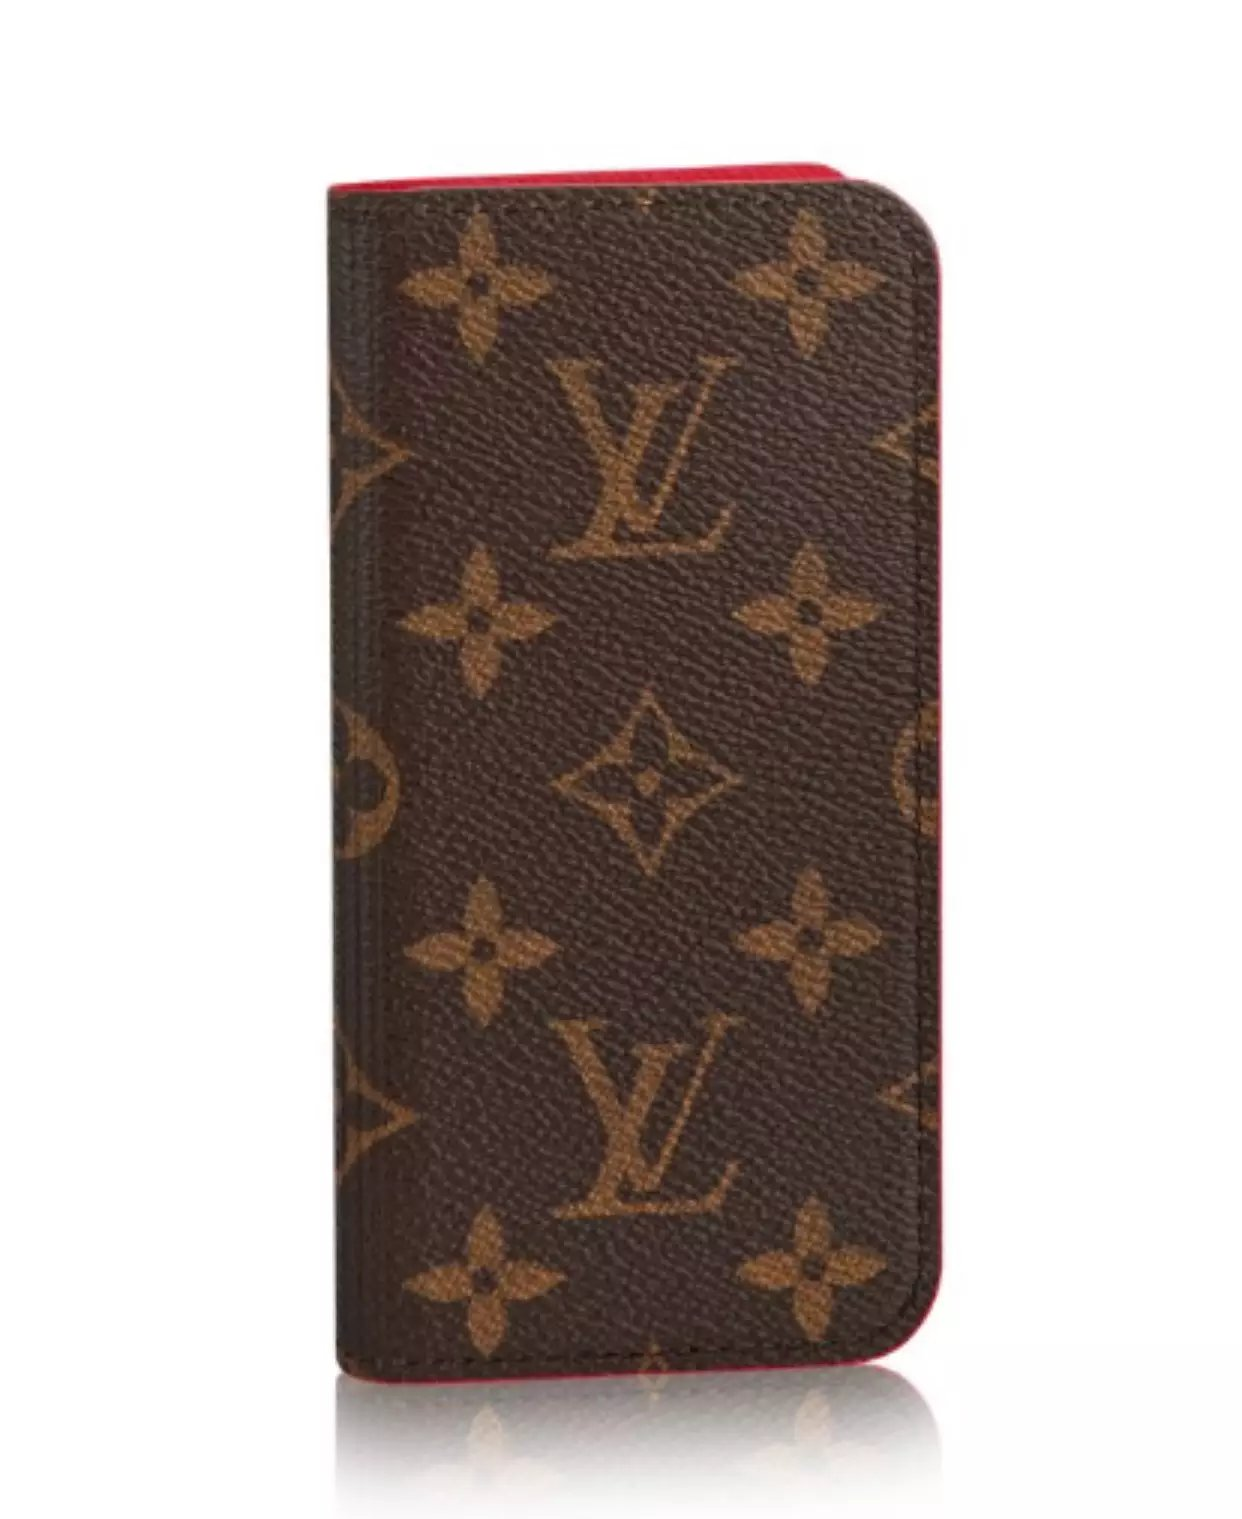 iphone 8 phone cases best covers for iphone 8 Louis Vuitton iphone 8 case 8 phone cases phone cases for iphone iphone 8 battery mah case i phone 6 good quality iphone 8 cases designer cases